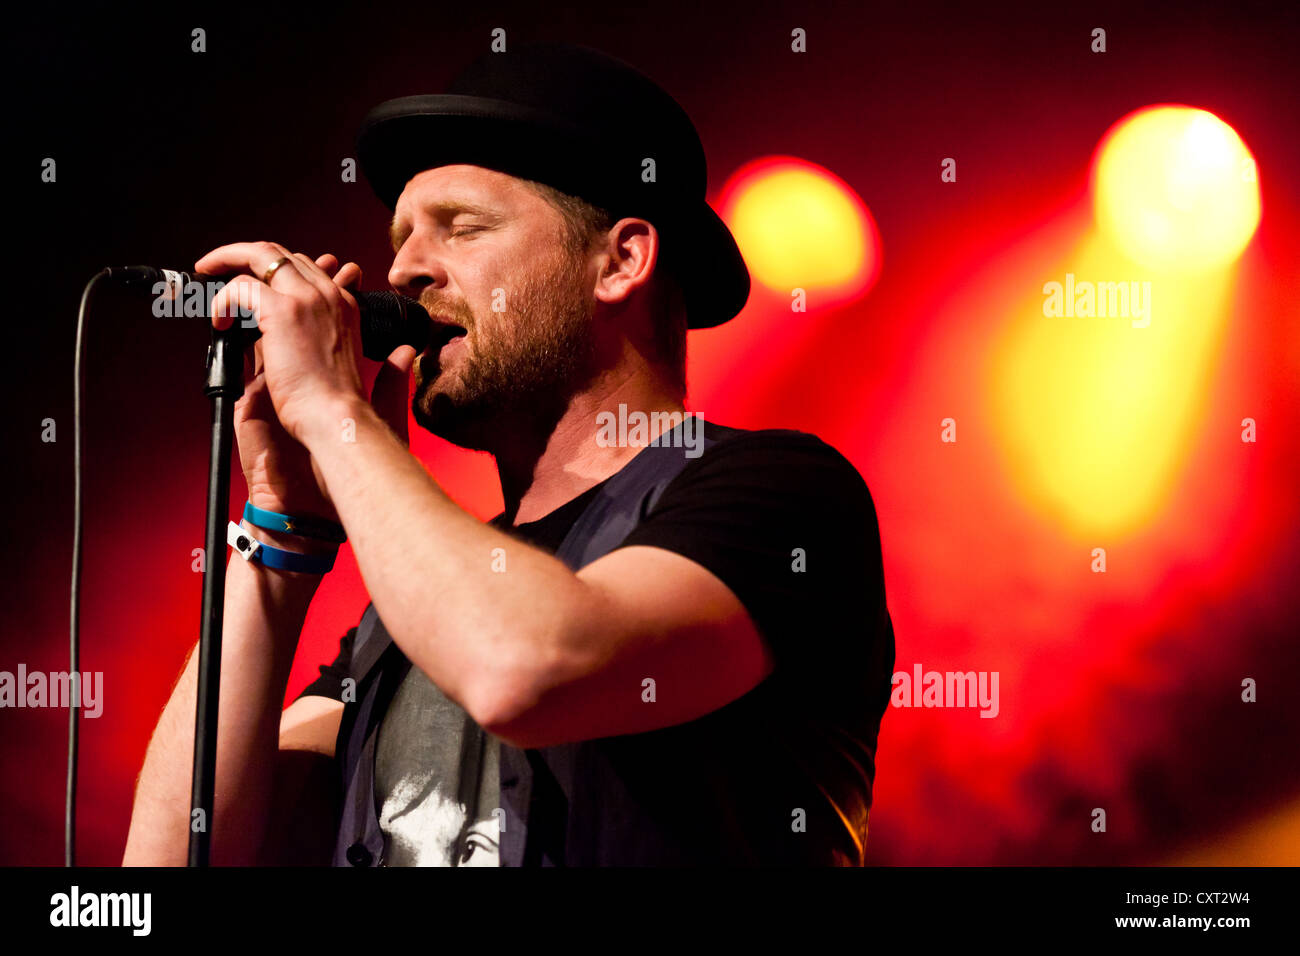 Bart van der Weide, singer of the Dutch band Racoon, performing live in the Schueuer concert hall, Lucerne, Switzerland, - Stock Image